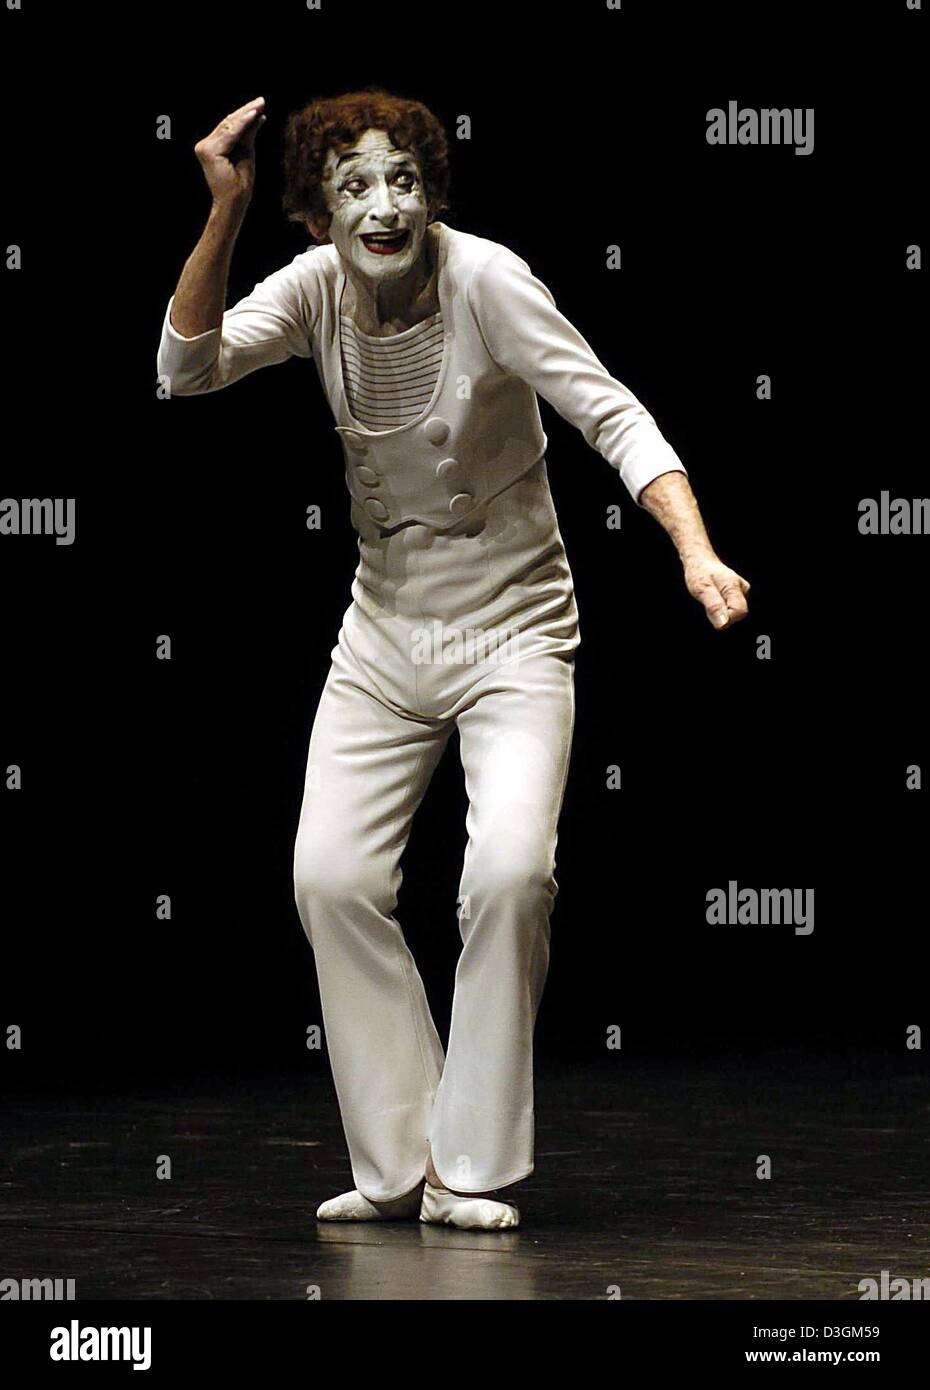 (dpa) - French pantomime Marcel Marceau performs on stage during the start of his tour of Germany at the Thalia - Stock Image